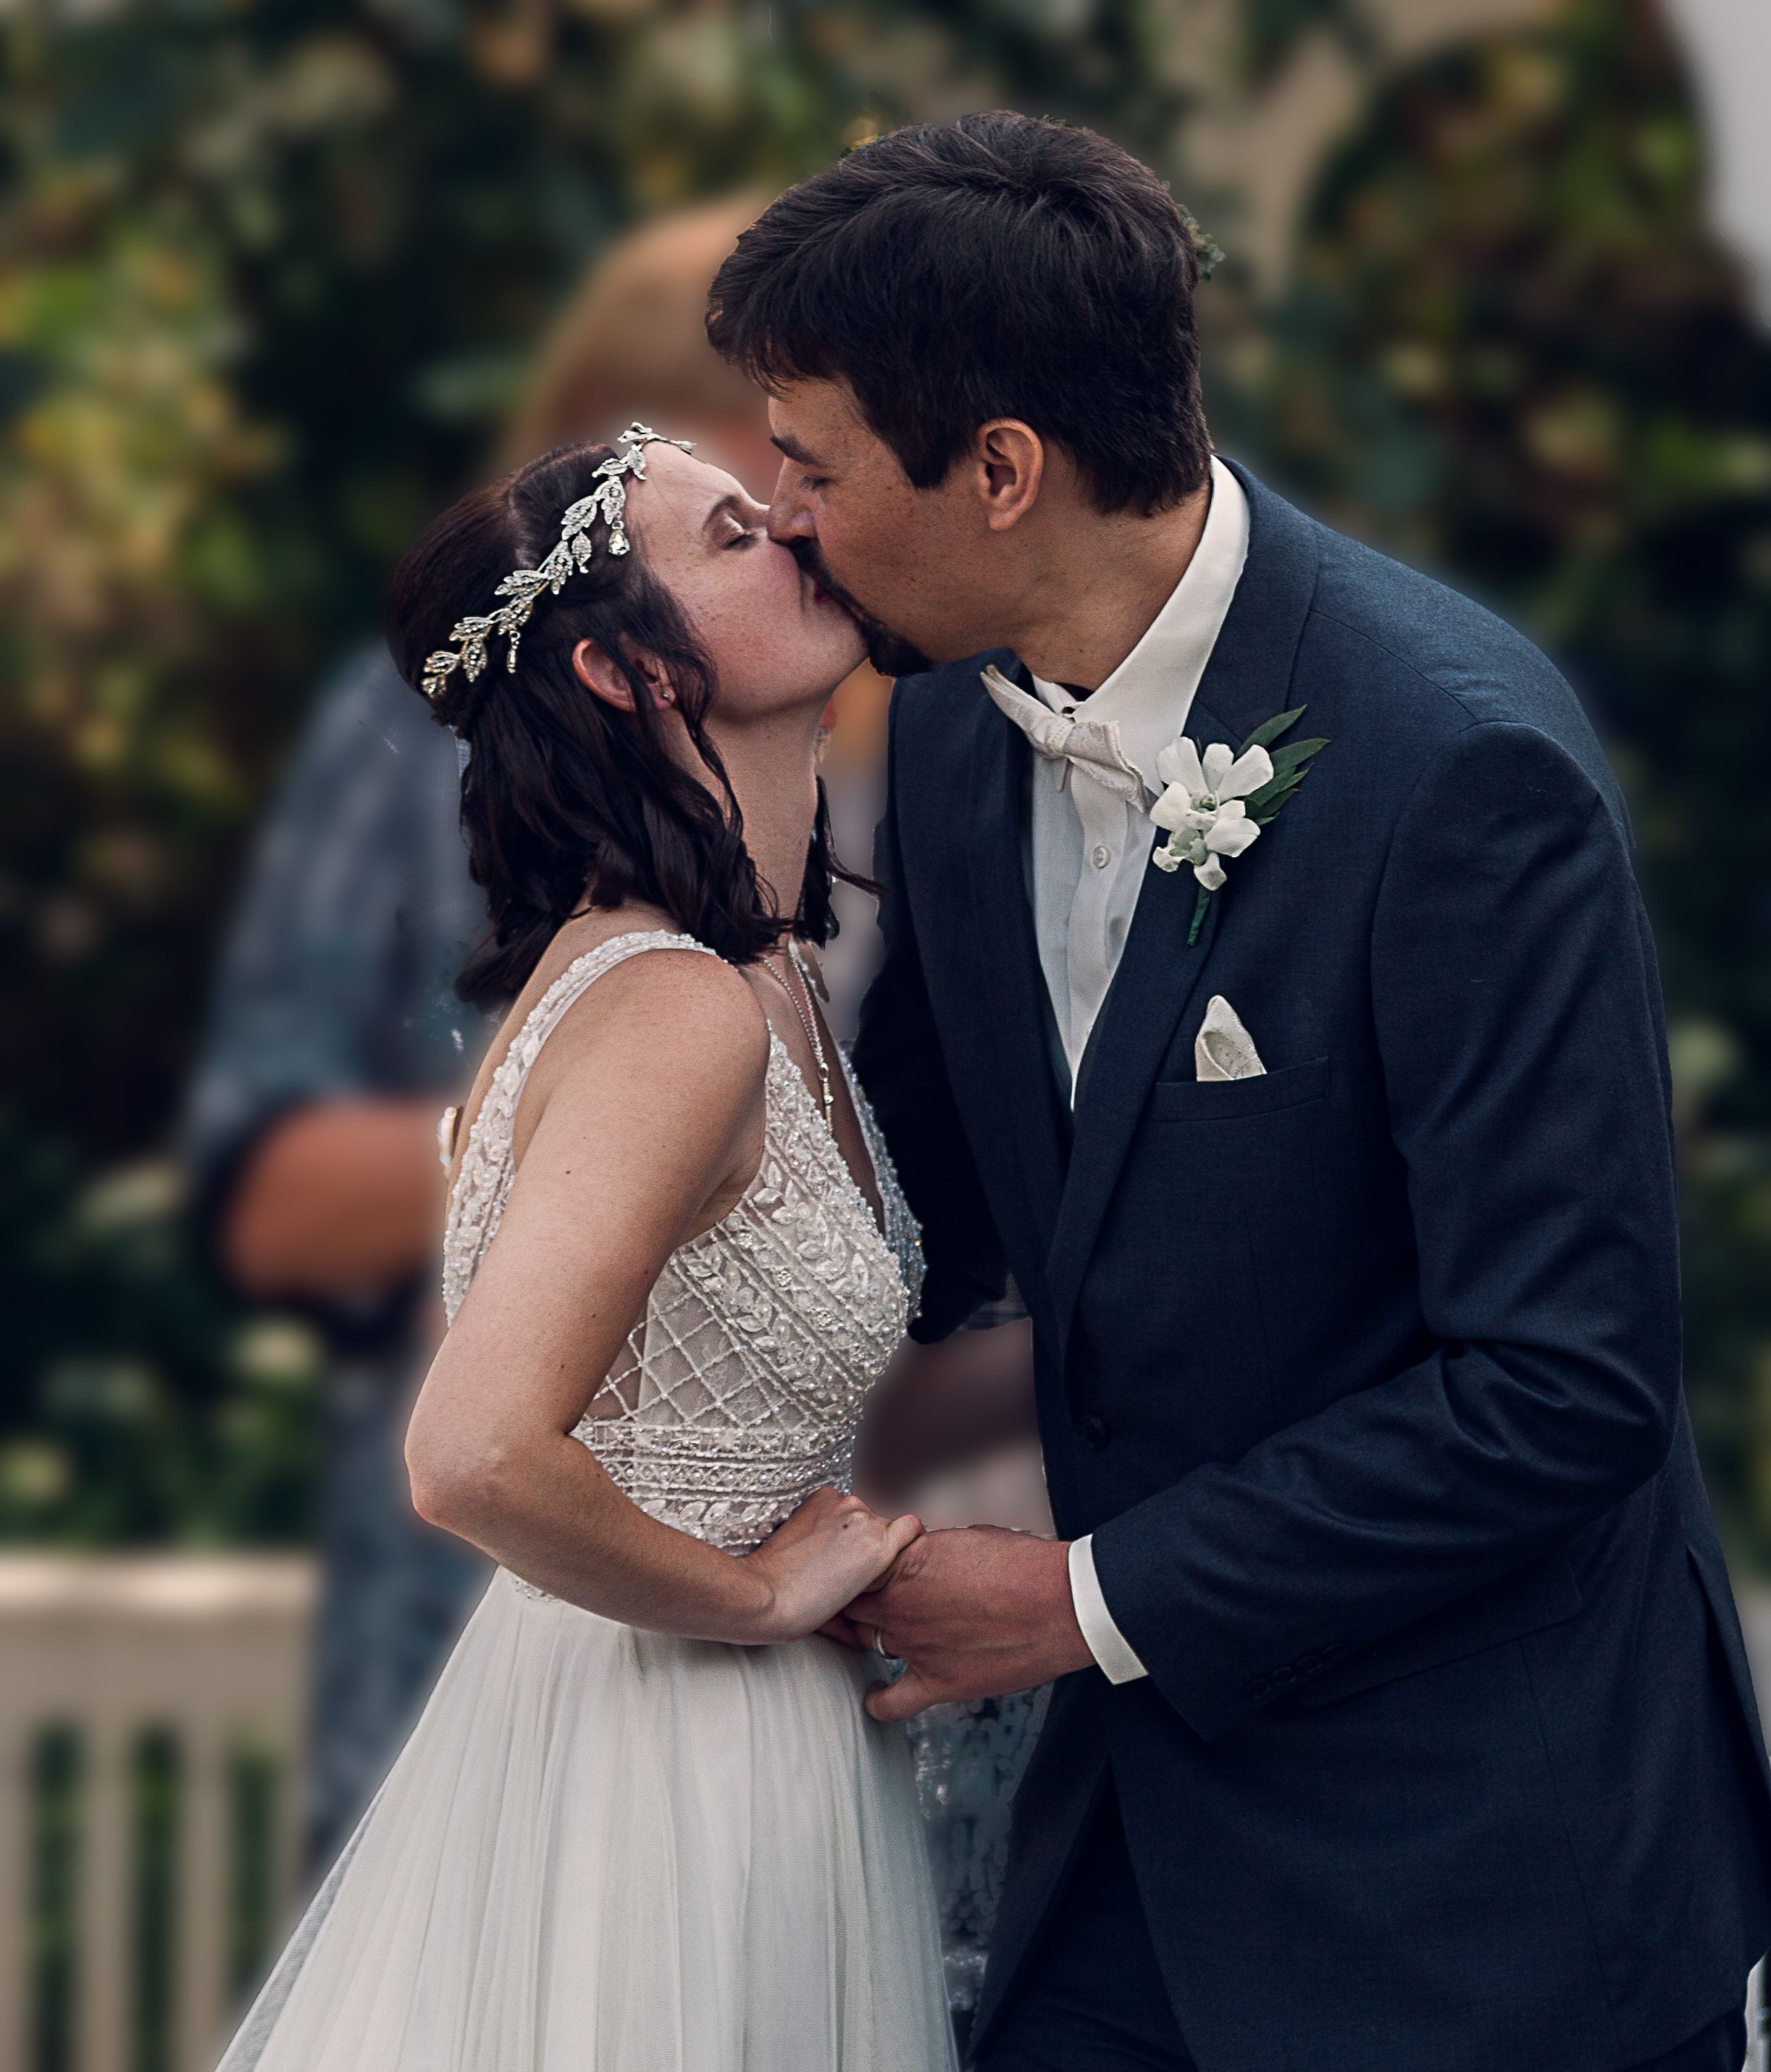 Newly married couple share first kiss during their outdoor wedding at the Buffalo Erie County Botanical gardens